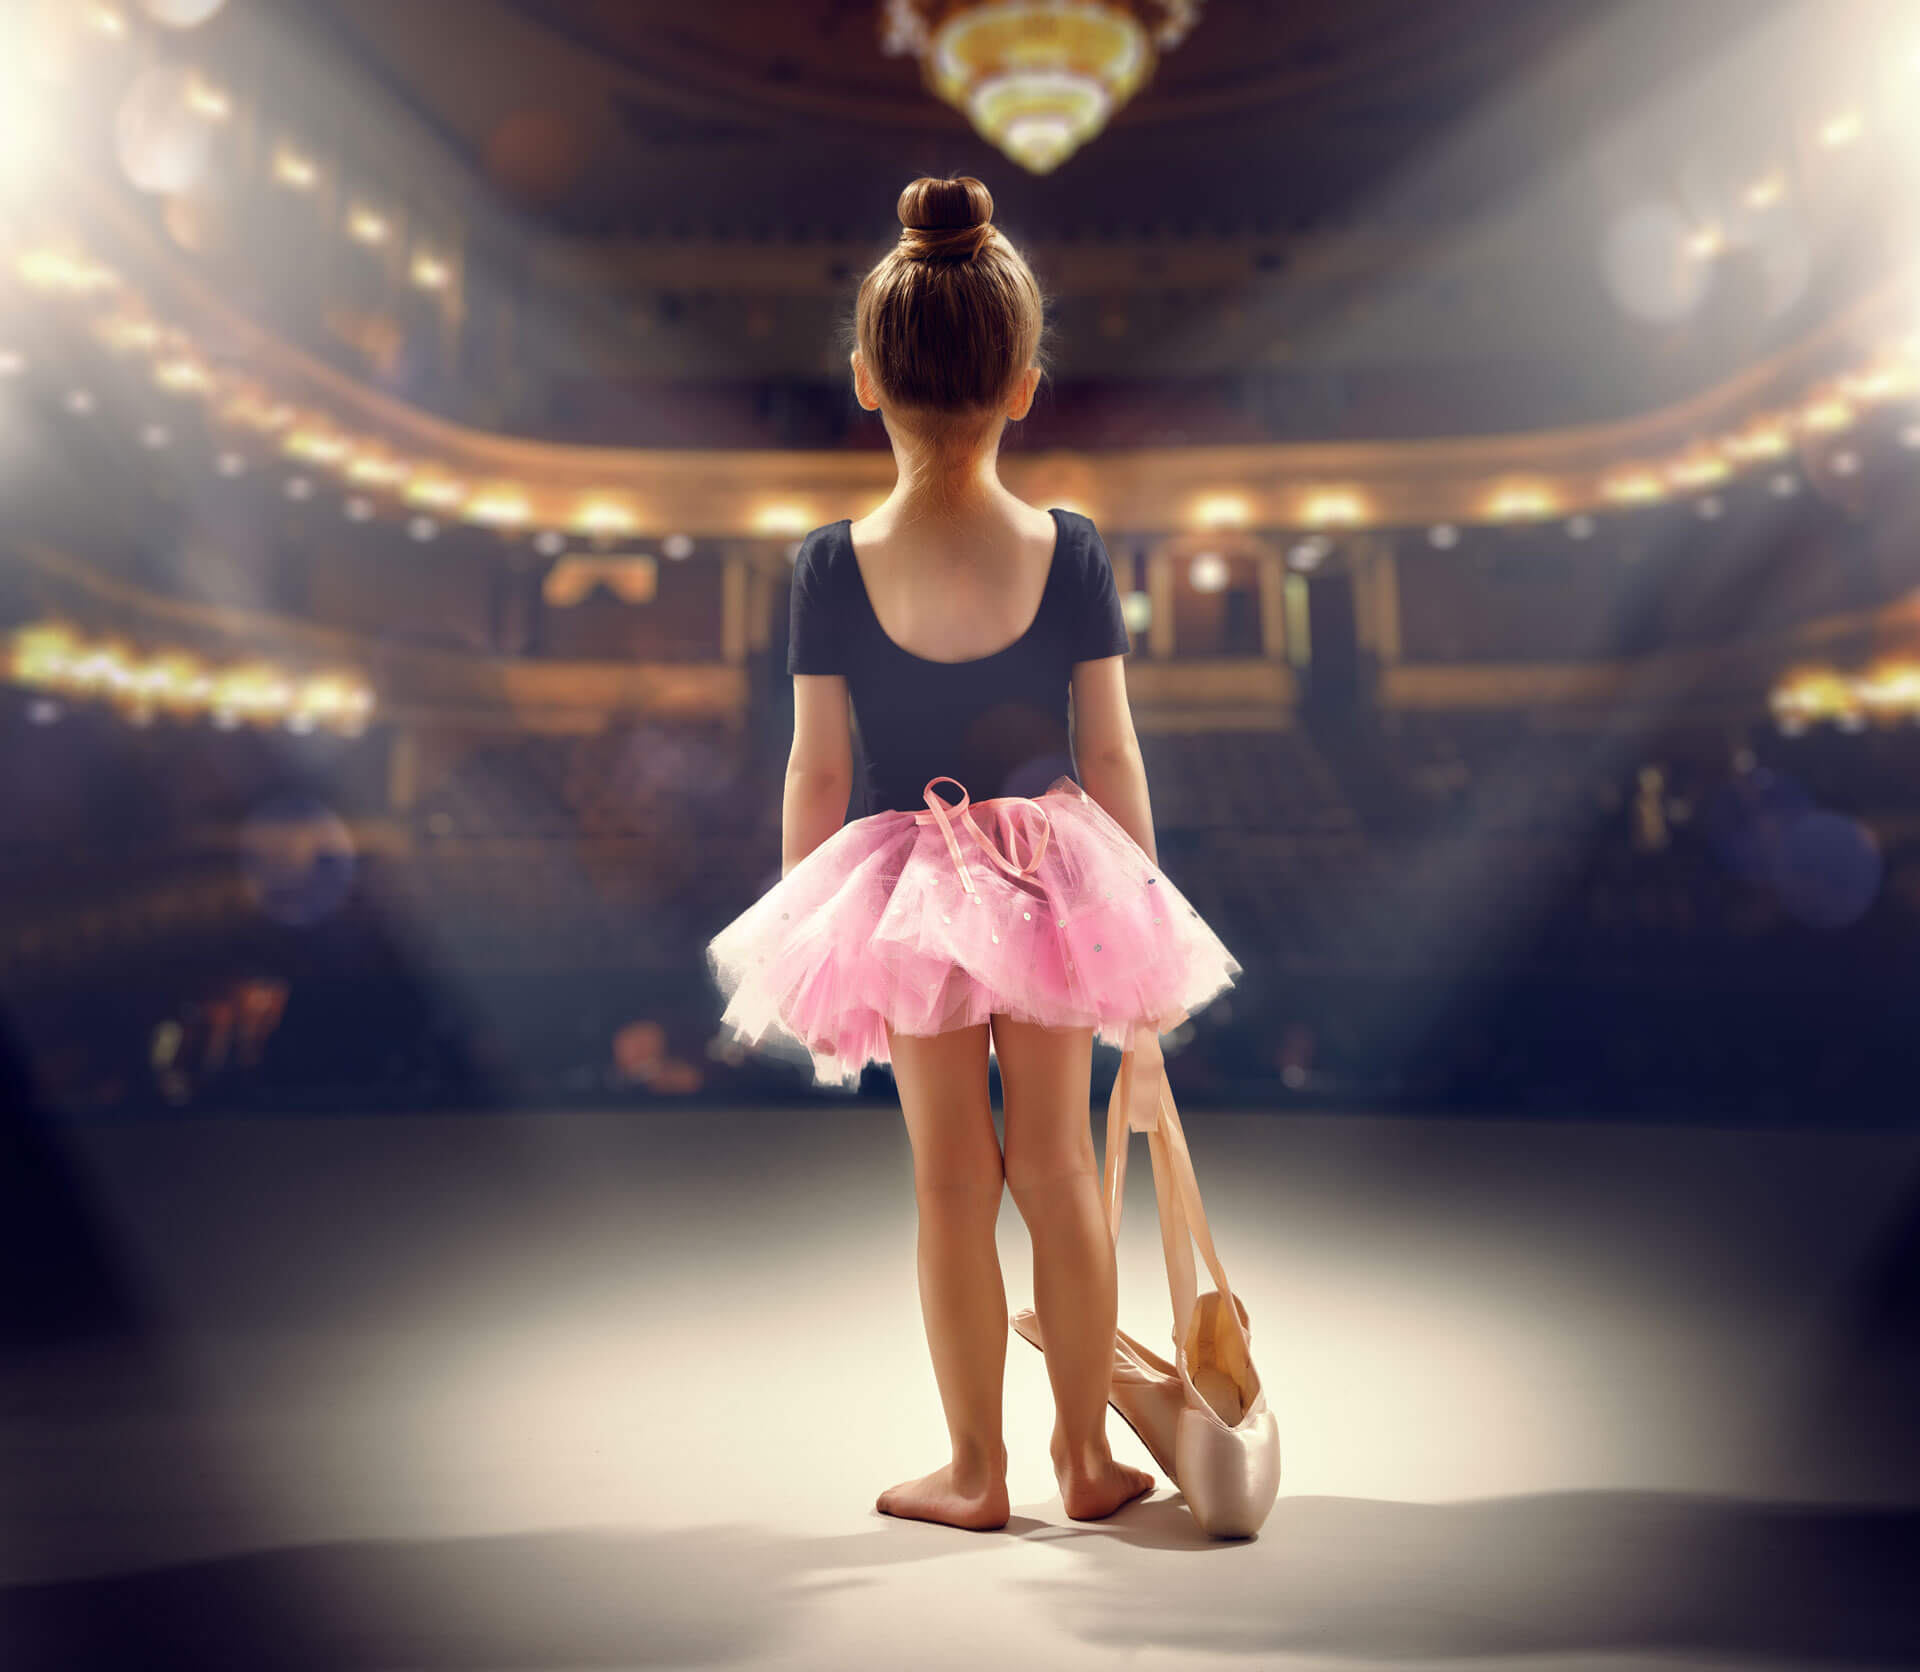 PreDancer-on-stage-with-pointe-shoes